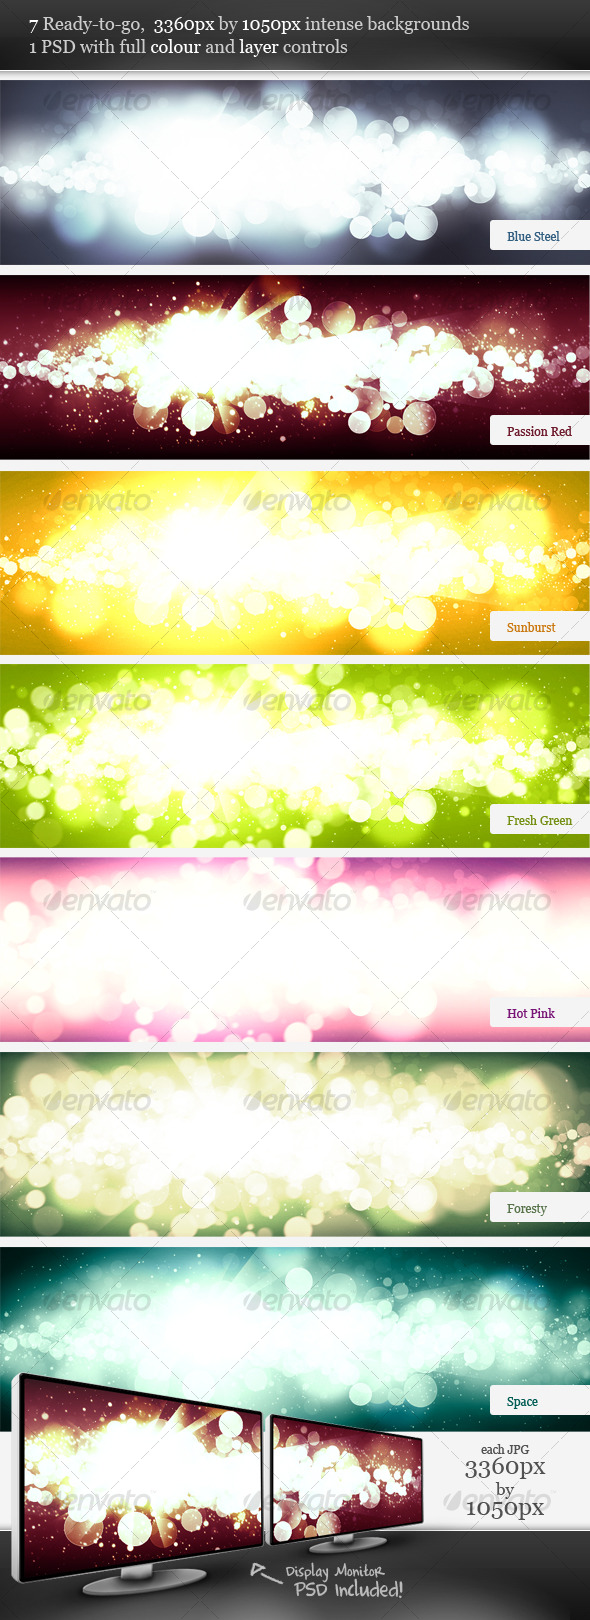 Intense Flare Burst Backgrounds